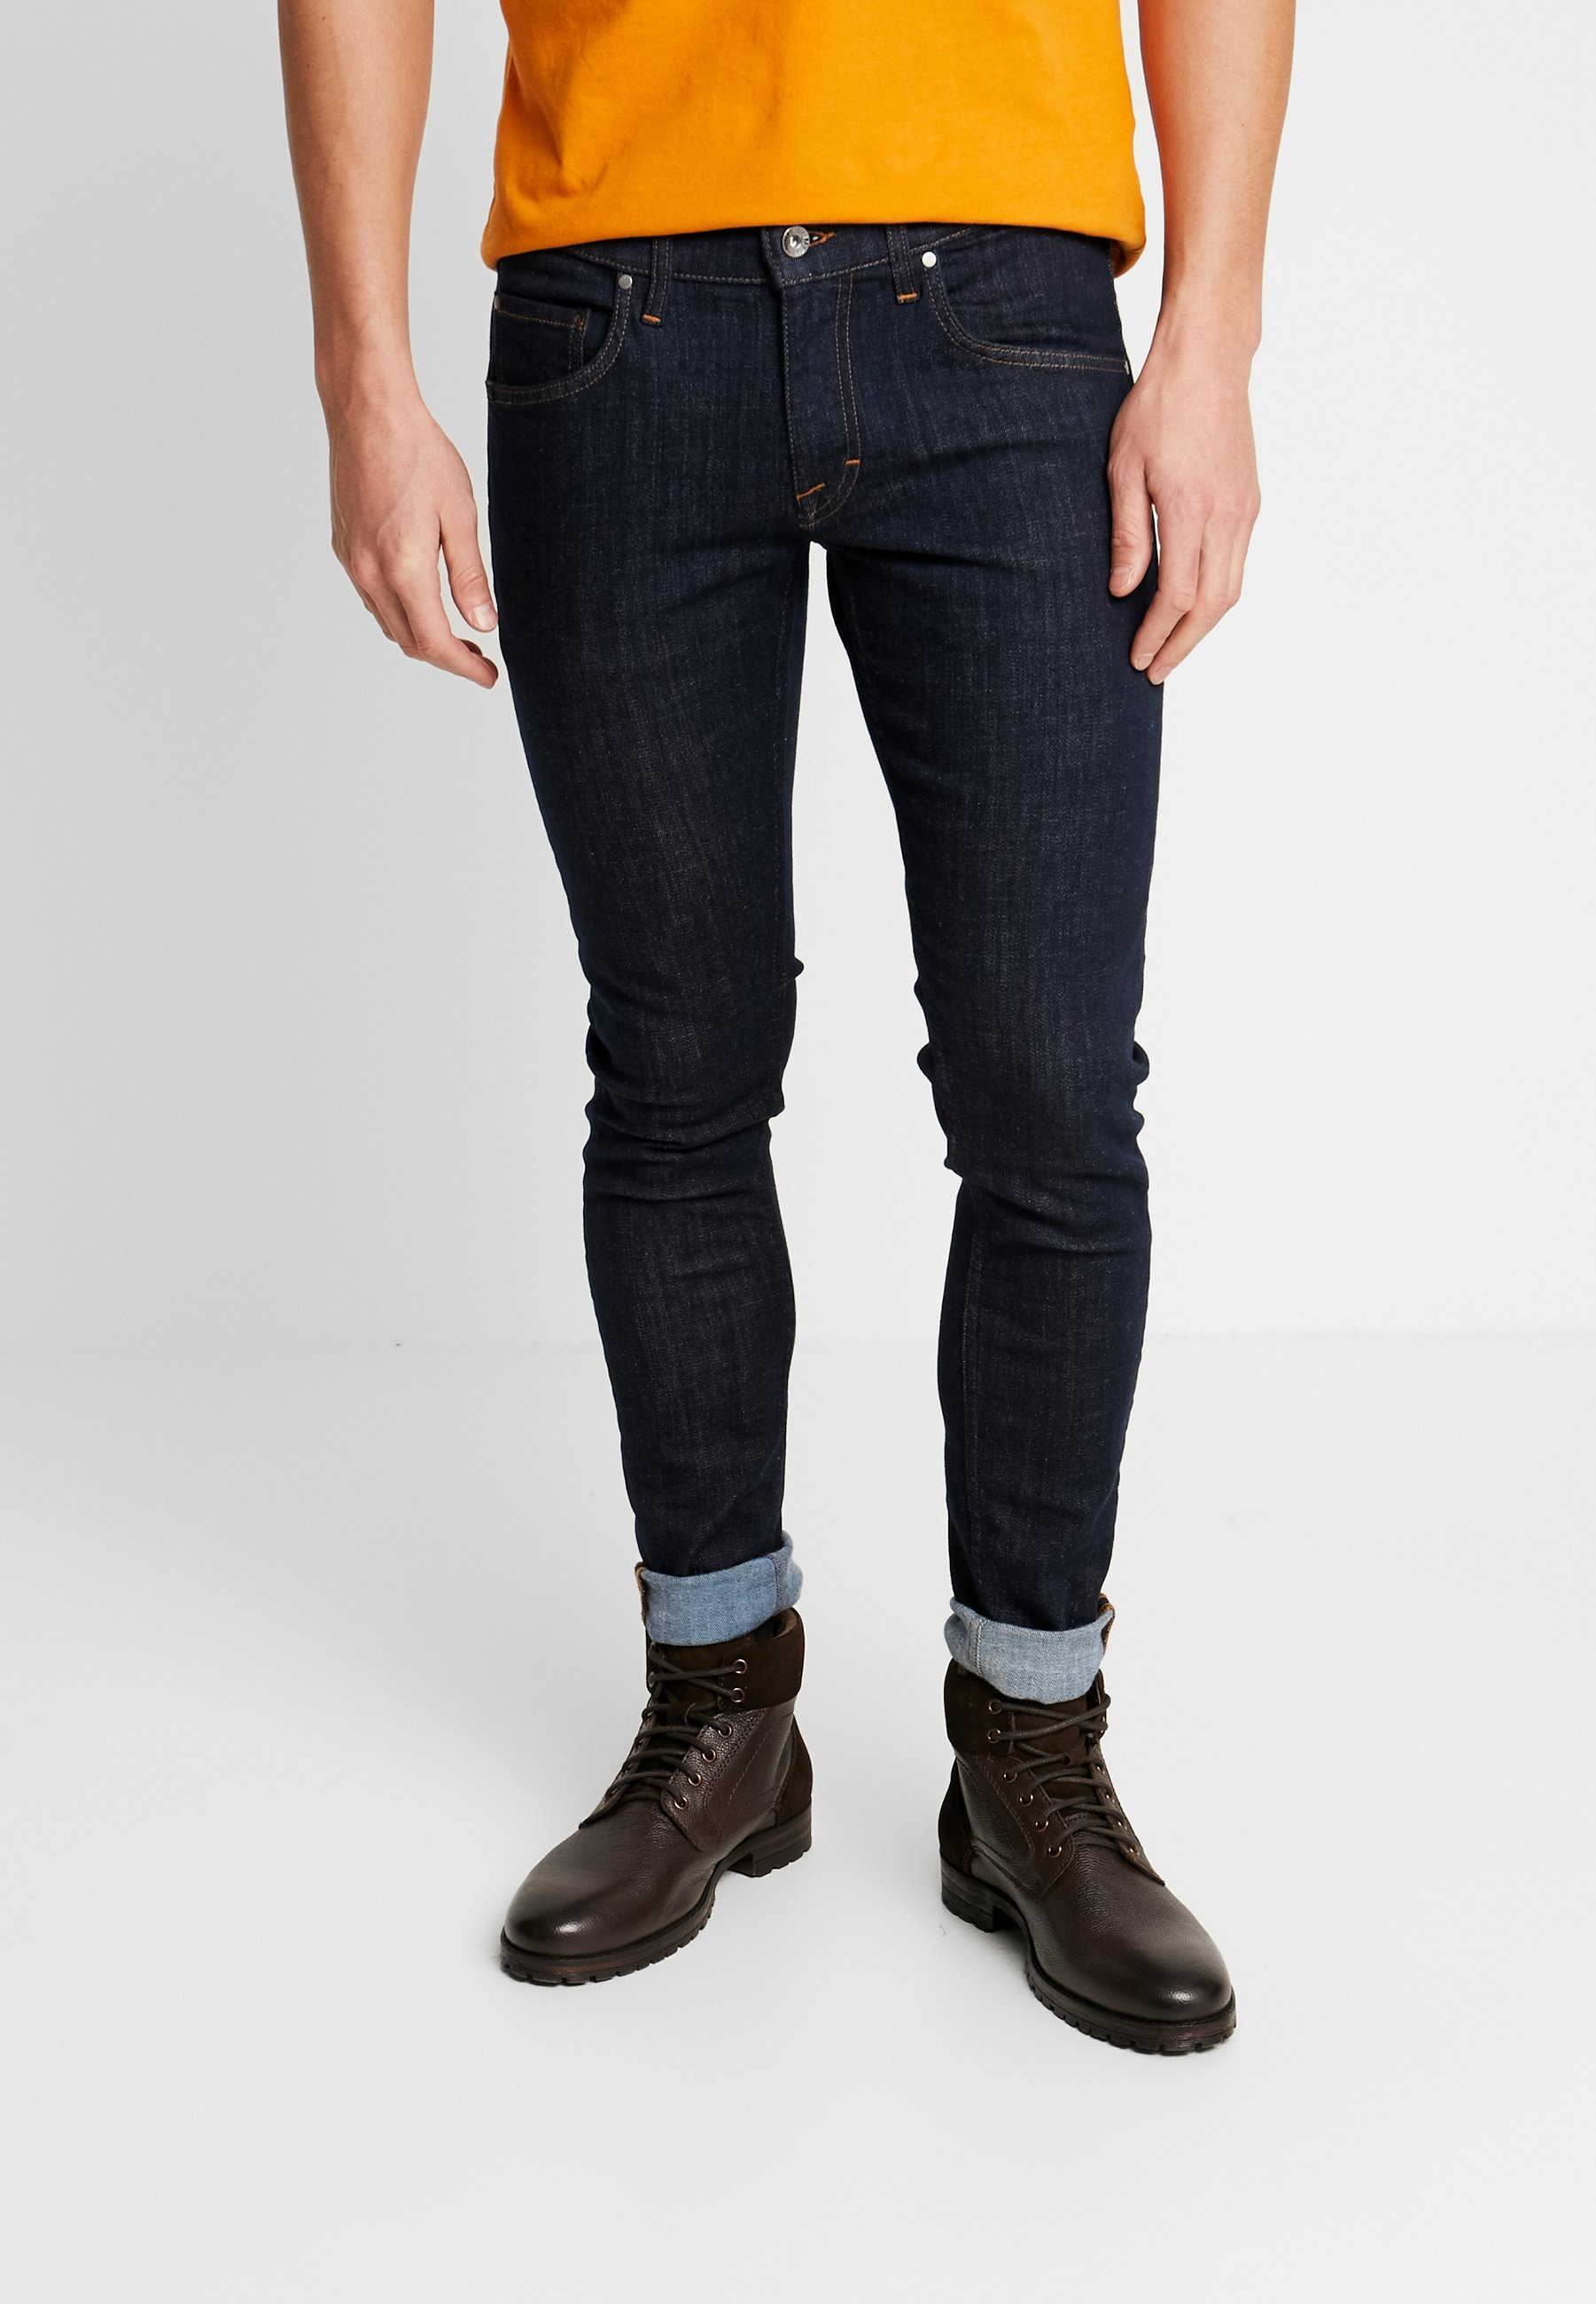 Tiger of Sweden Jeans Jeansy Skinny Fit - midnight blue